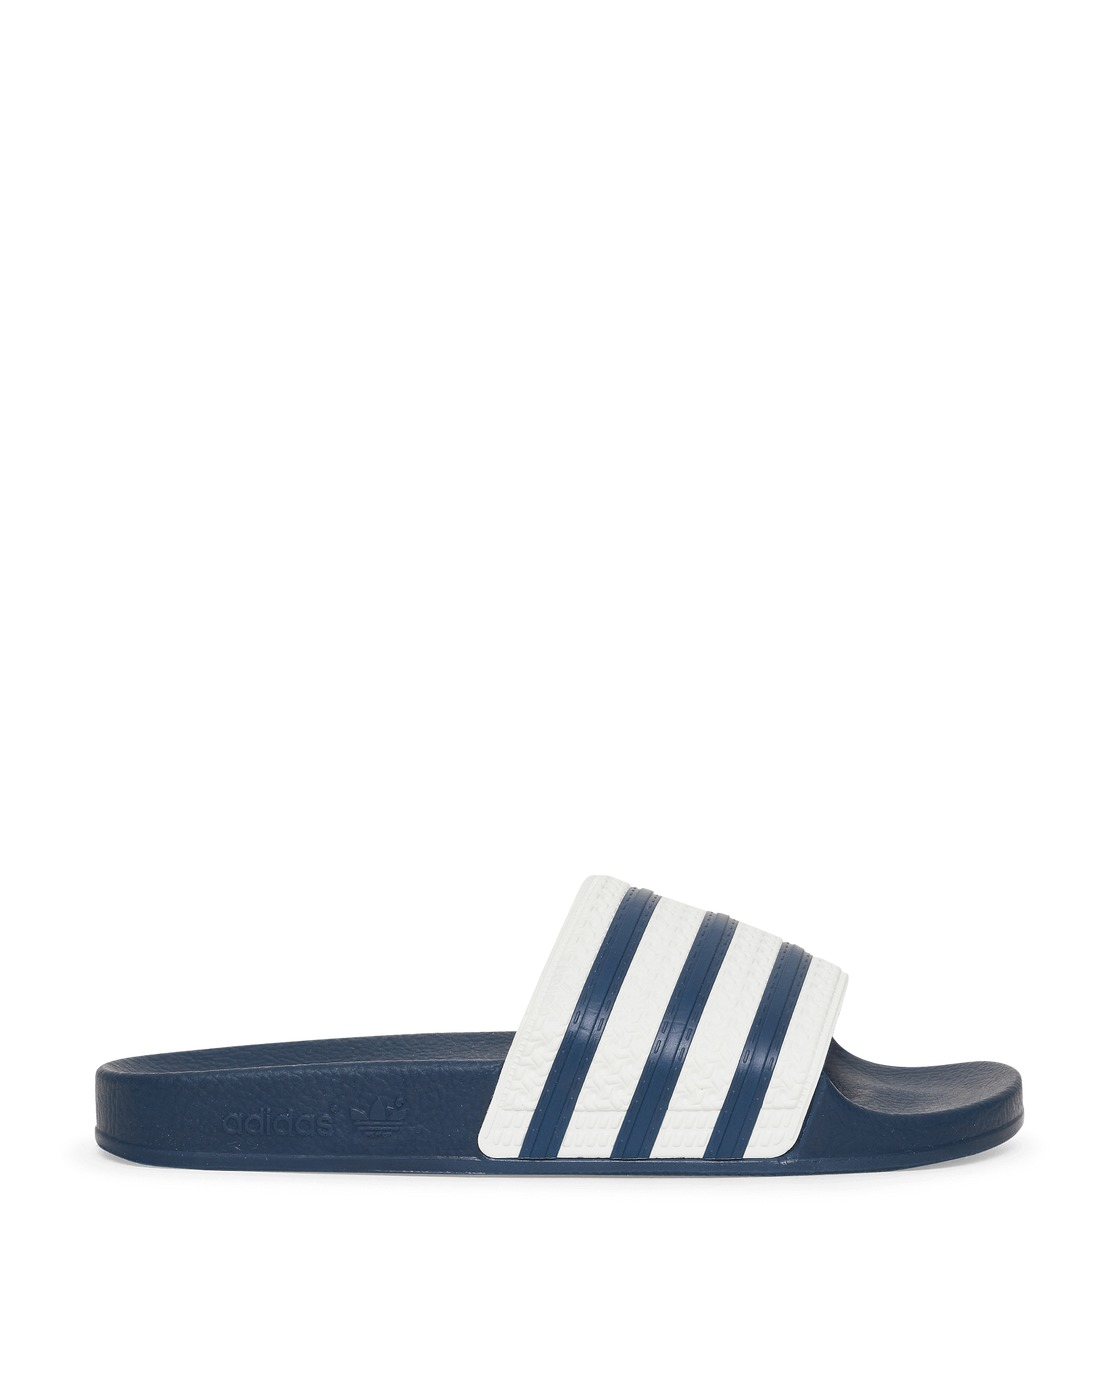 Photo: Adidas Originals Adilette Slides Adiblu/Wht